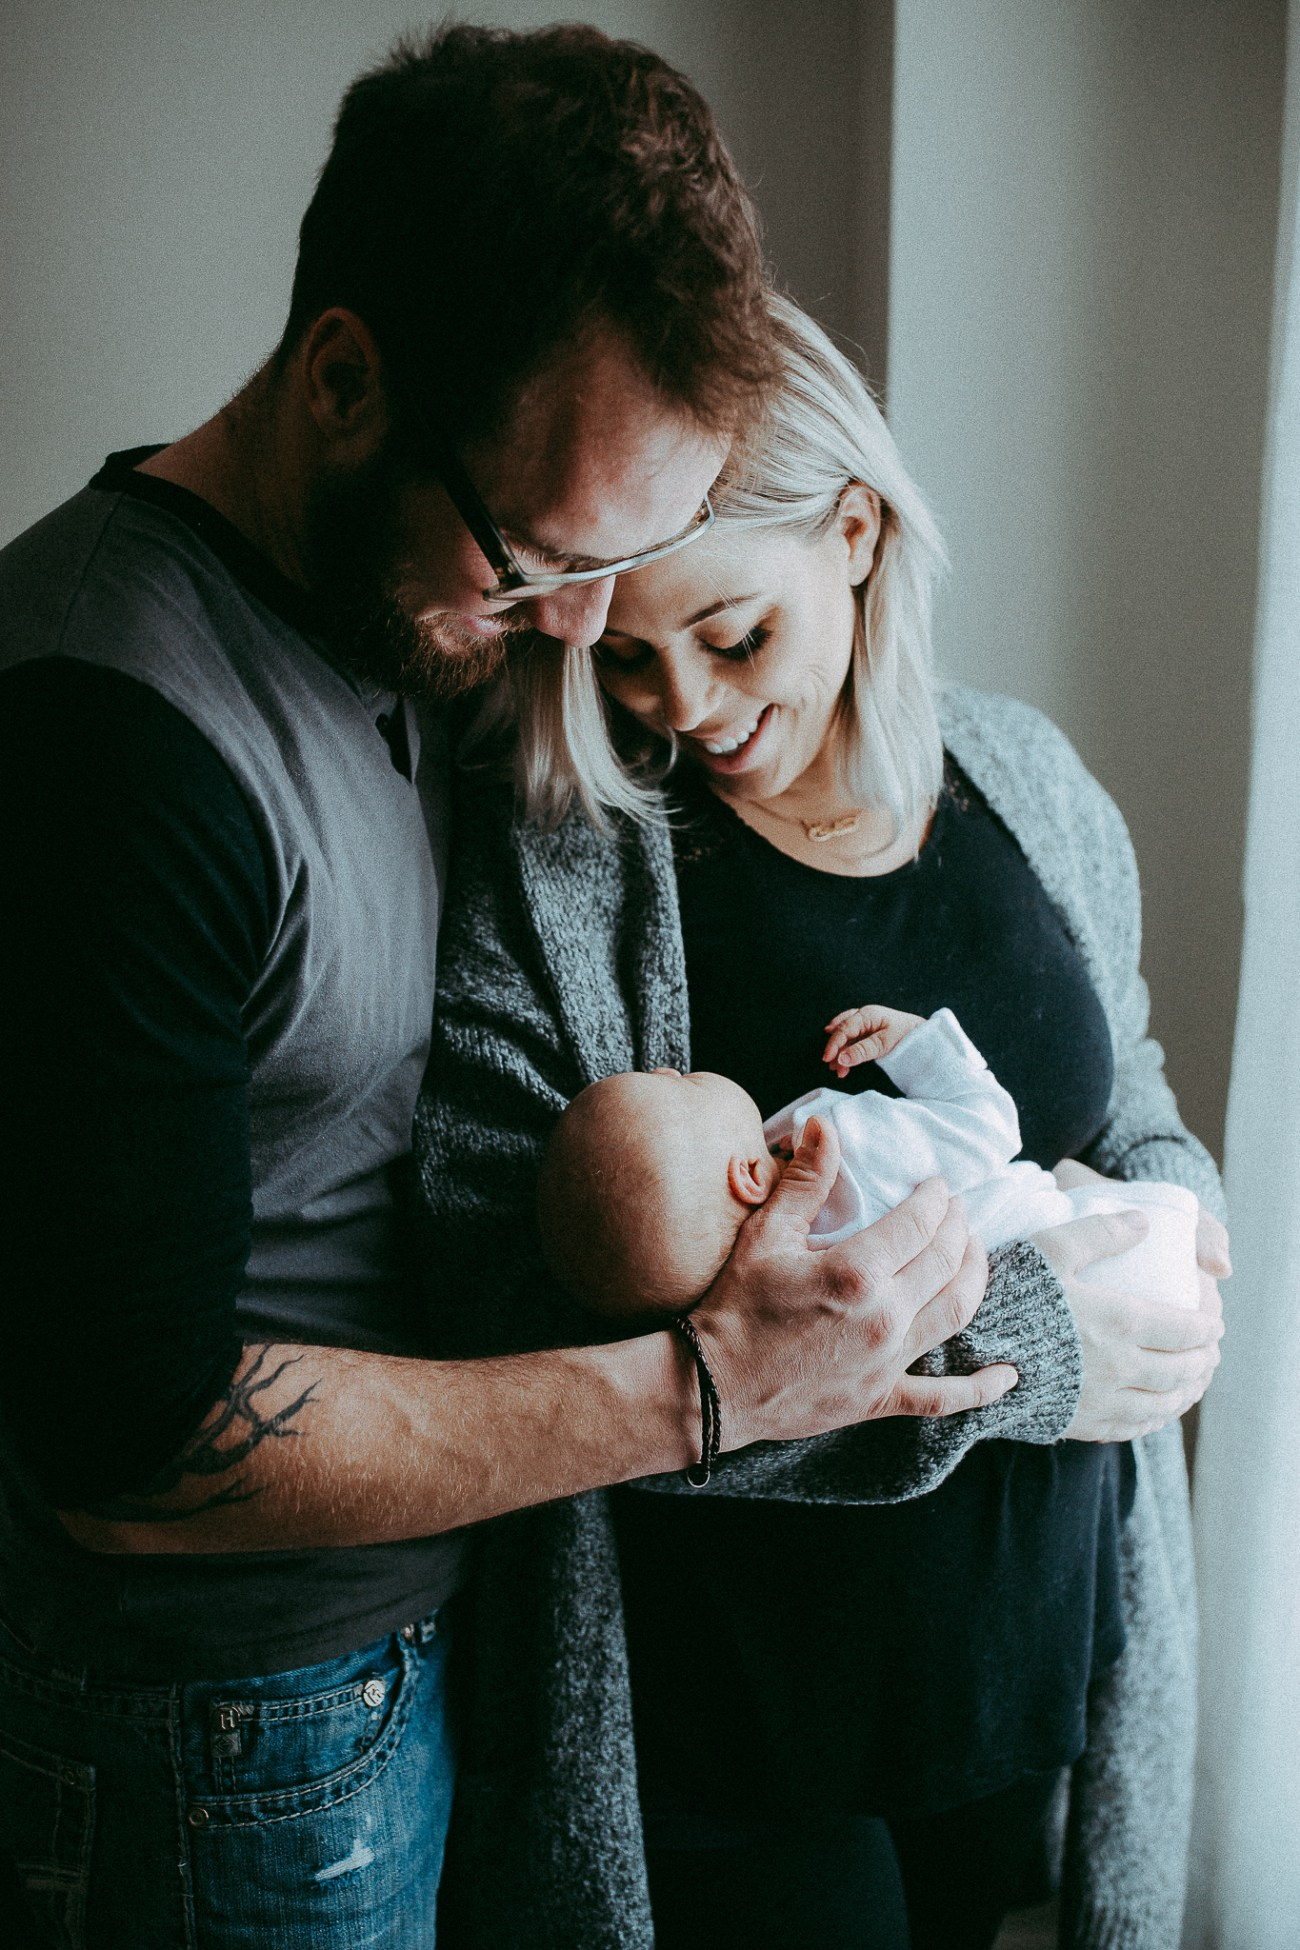 family photographer,newborn,newborn lifestyle photography,newborn photographer,newborn photographer red deer,newborn photos,